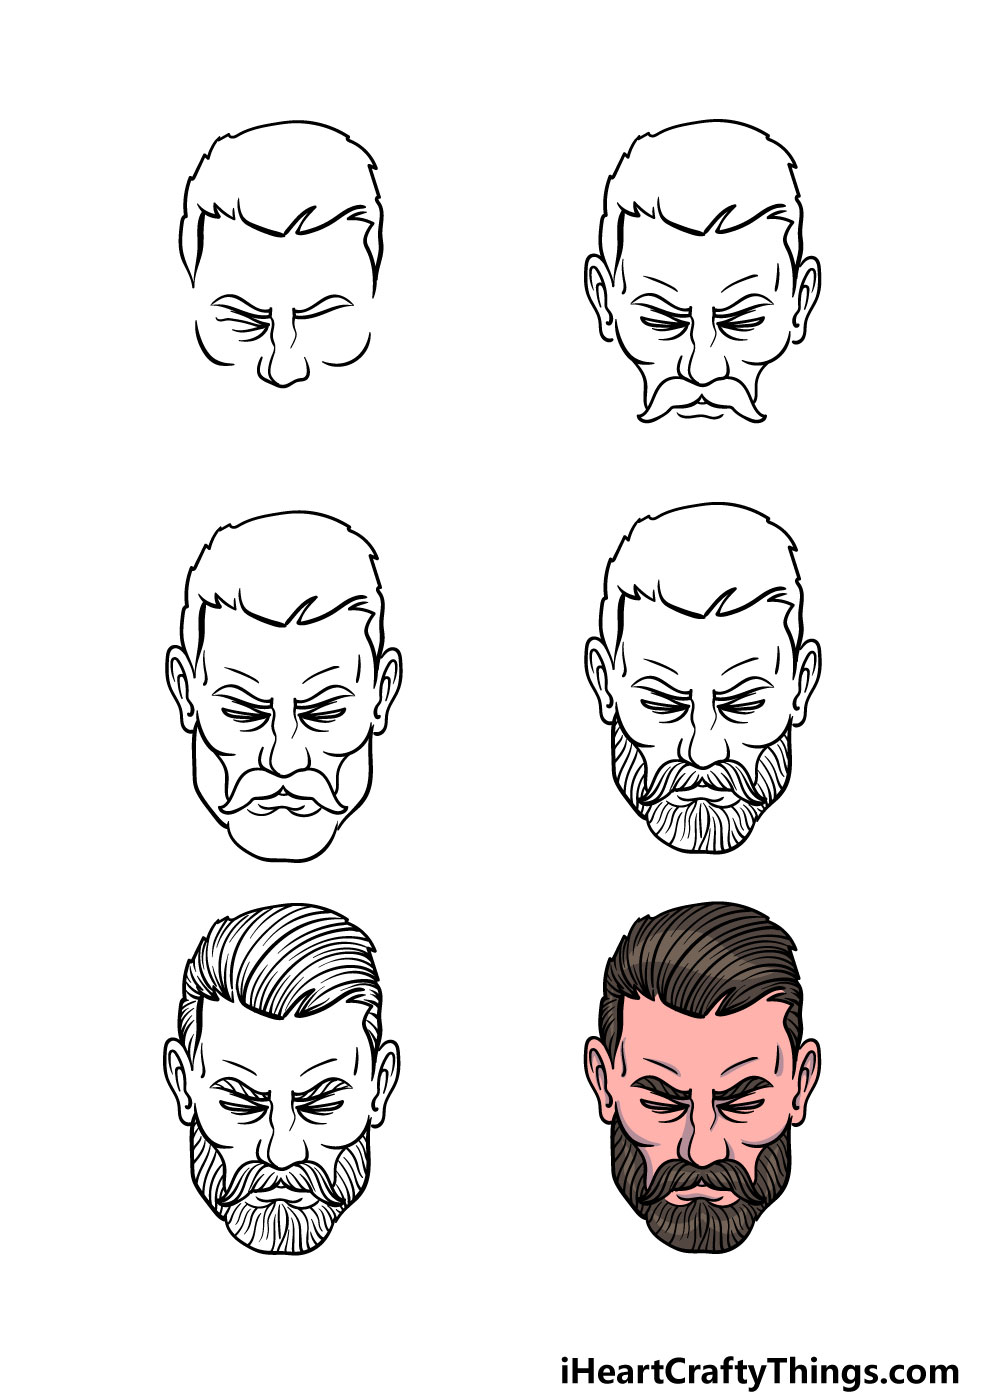 How to Draw A Beard in 6 steps